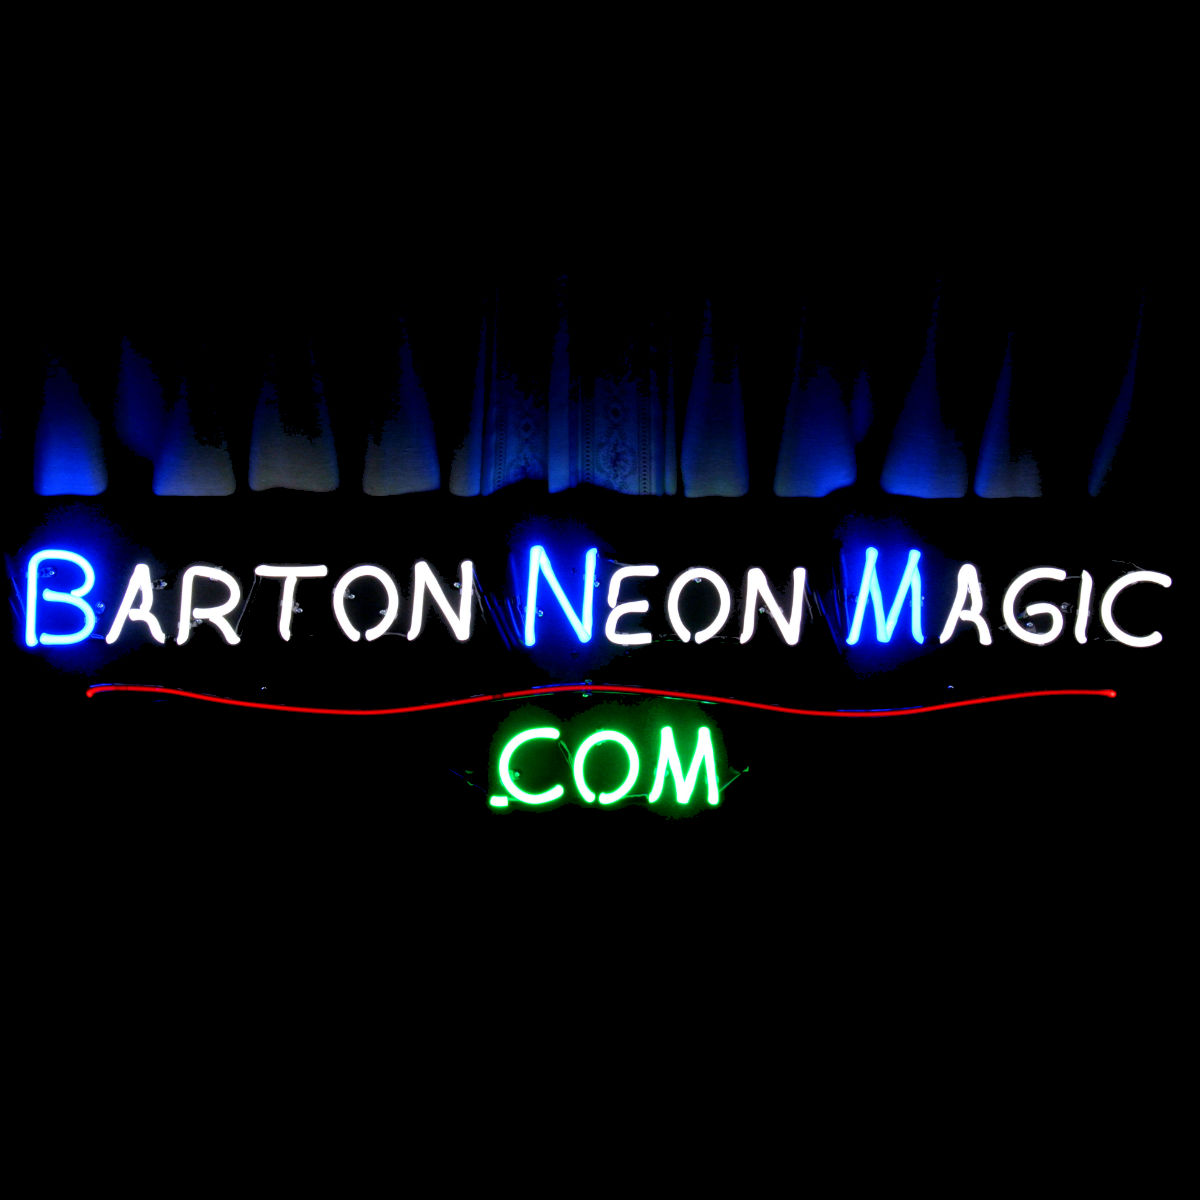 Custom Neon Light Fixtures by John Barton - Neon Glass Artist & Light Sculptor - BartonNeonMagic.com